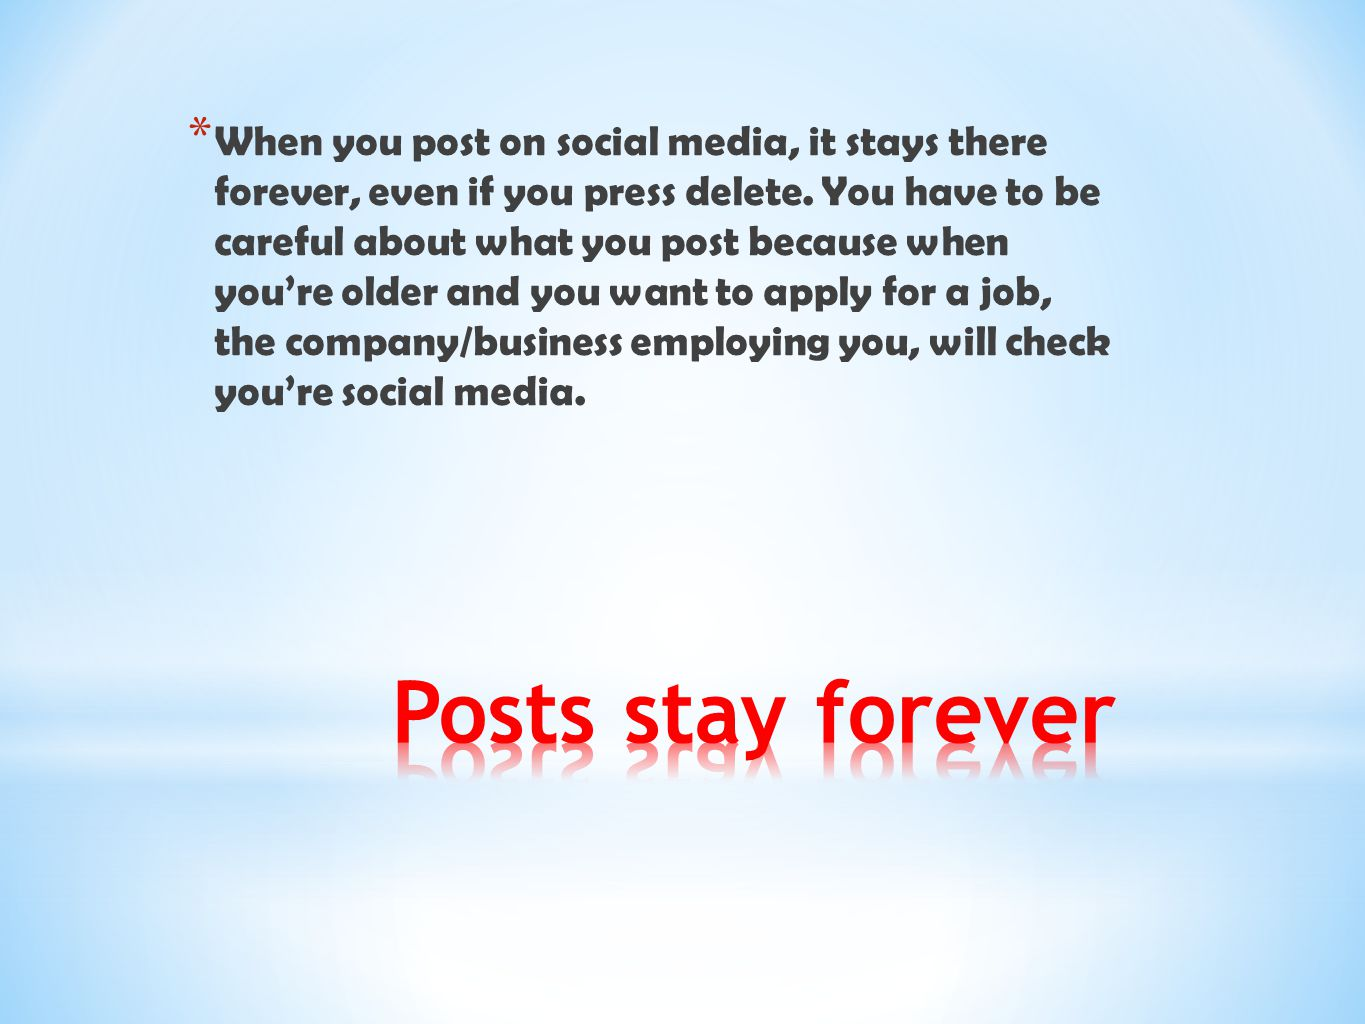 When you post on social media, it stays there forever, even if you press delete. You have to be careful about what you post because when you're older and you want to apply for a job, the company/business employing you, will check you're social media.